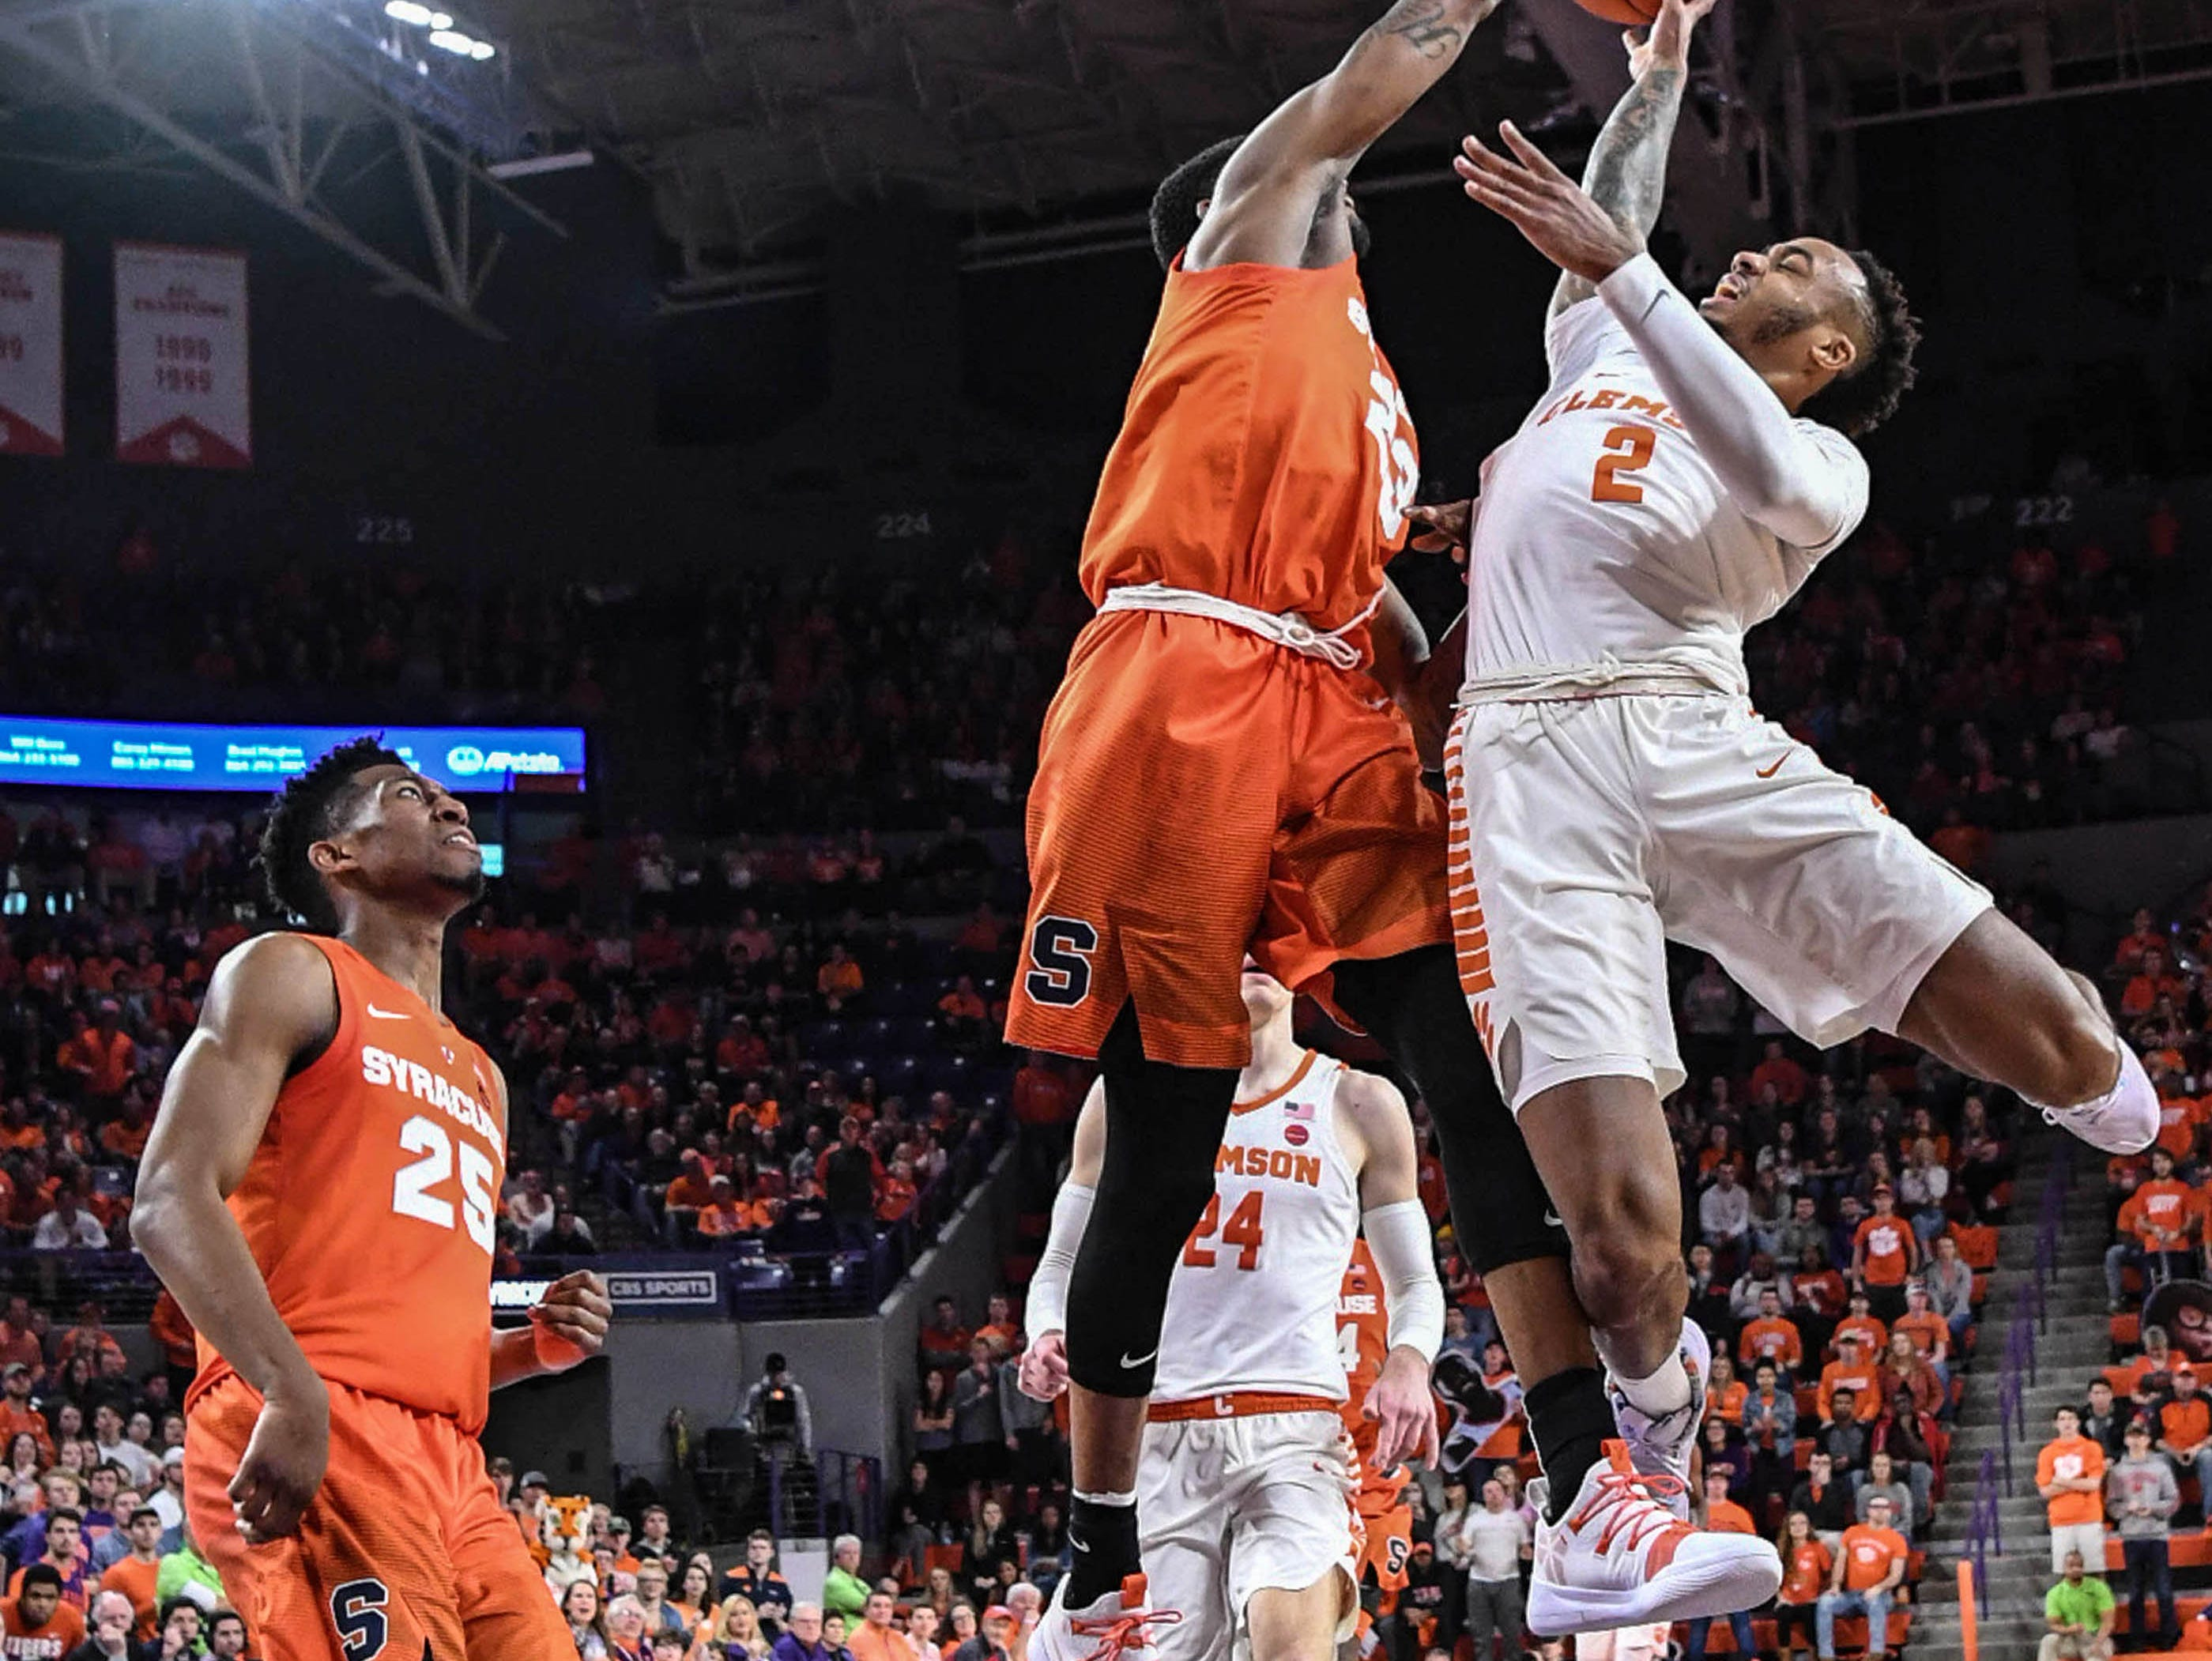 Clemson guard Marcquise Reed (2) has a shot blocked by Syracuse guard Tyus Battle(25) during the second half in Littlejohn Coliseum in Clemson Saturday, March 9, 2019.